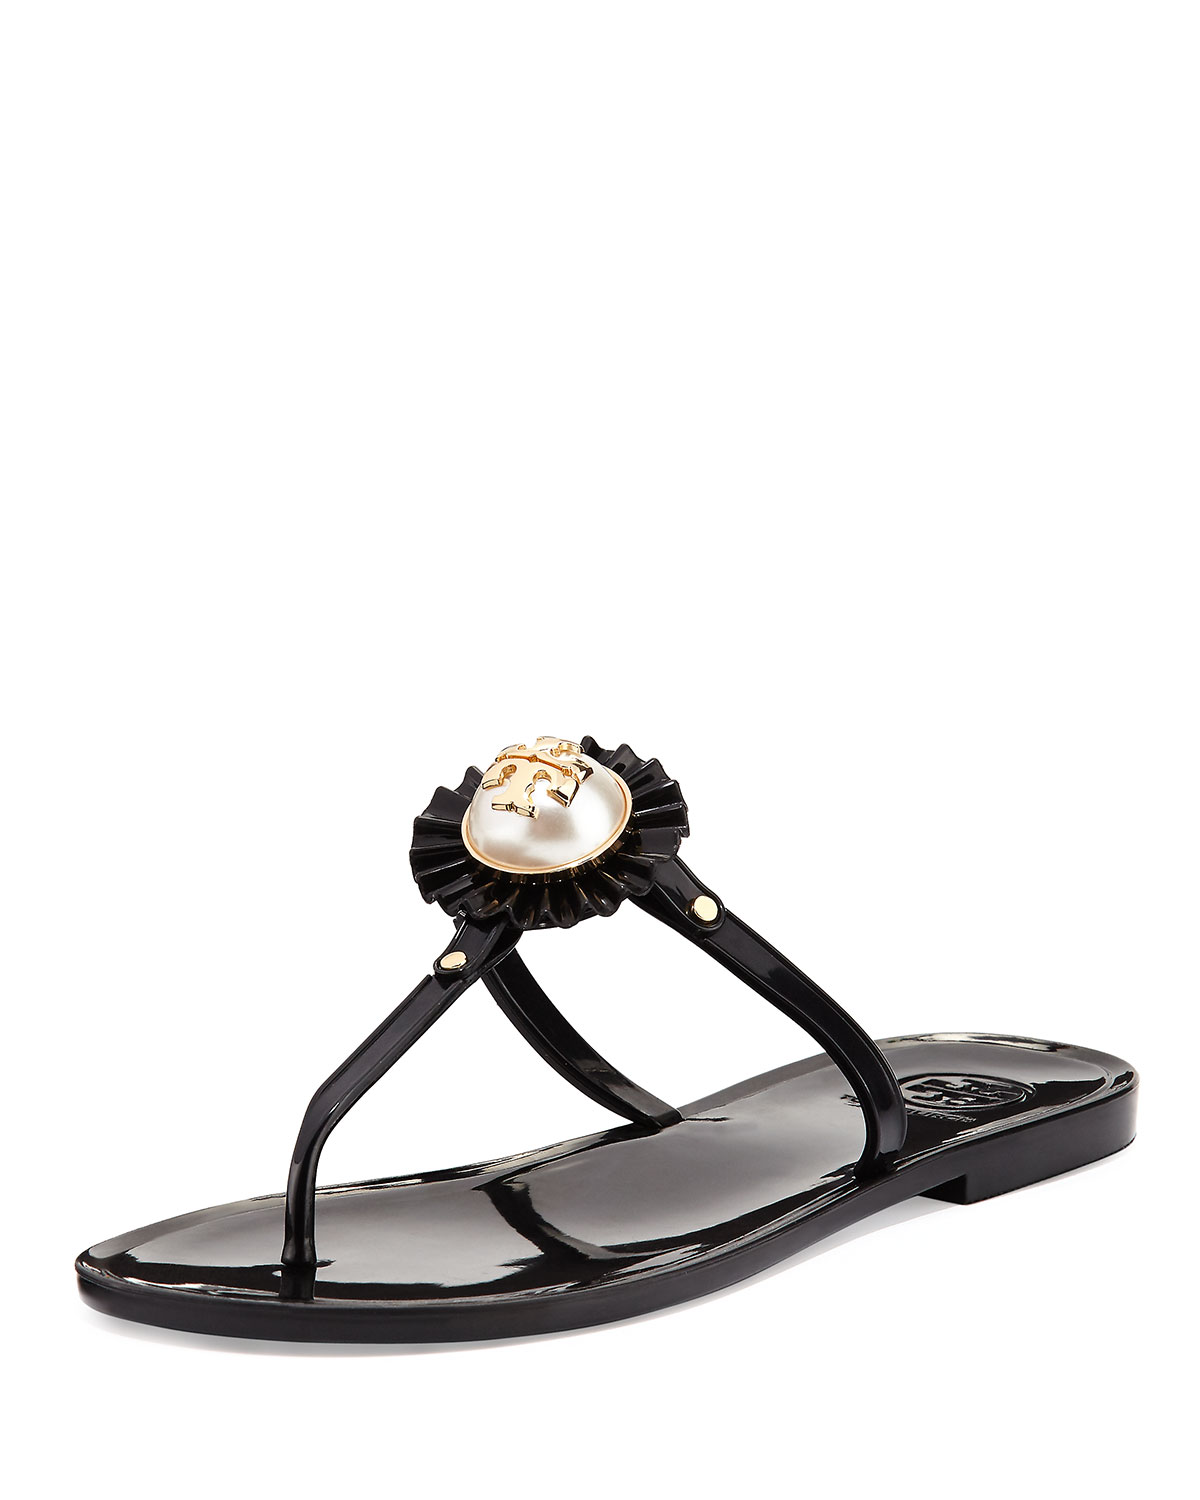 8540b32e8f2 Tory Burch Melody Pearly Flat Thong Sandal